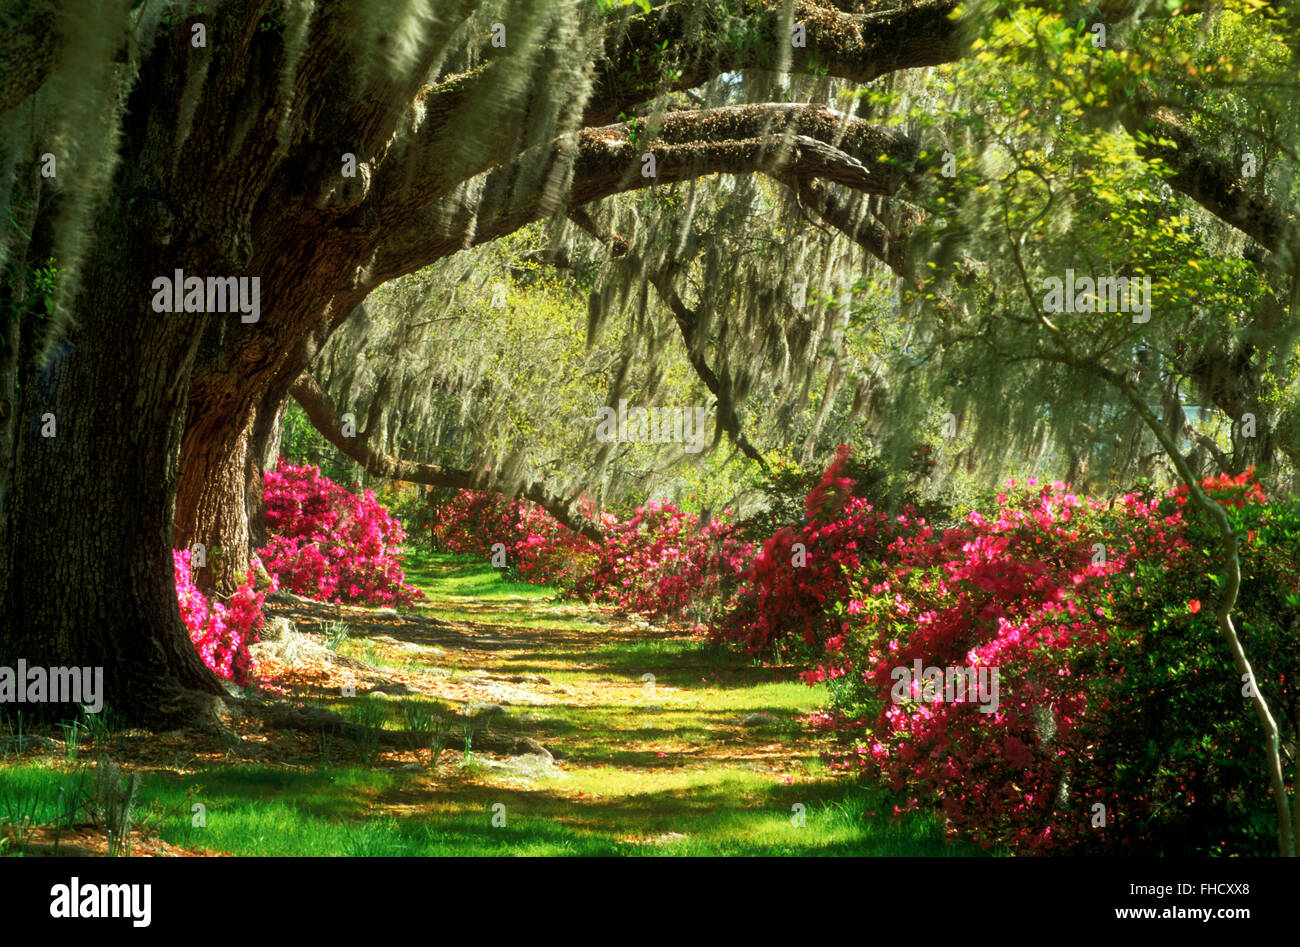 Old cypress trees with hanging Spanish moss and a variety of colorful flowers in South Carolina USA - Stock Image